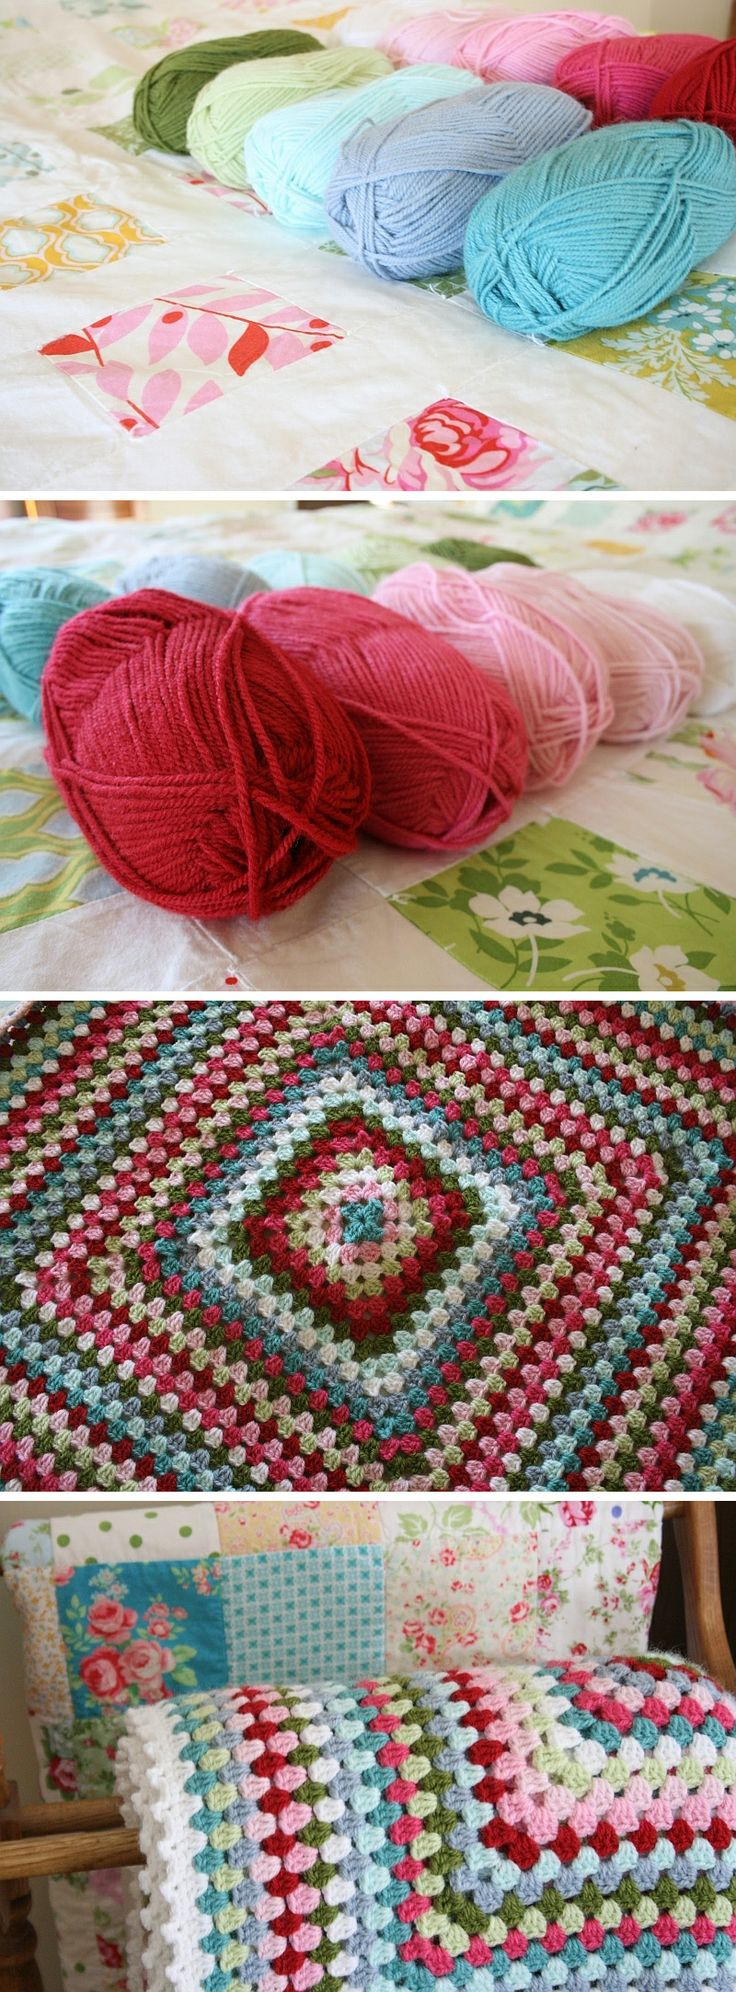 Granny square blanket, by Cottage1945. Hook size H, 10 colors of Encore yarn by Plymouth ~ colors 514, 449, 029, 137, 208, 450, 1201, 459, 462, 9601. #color #crochet #afghan #blanket #throw